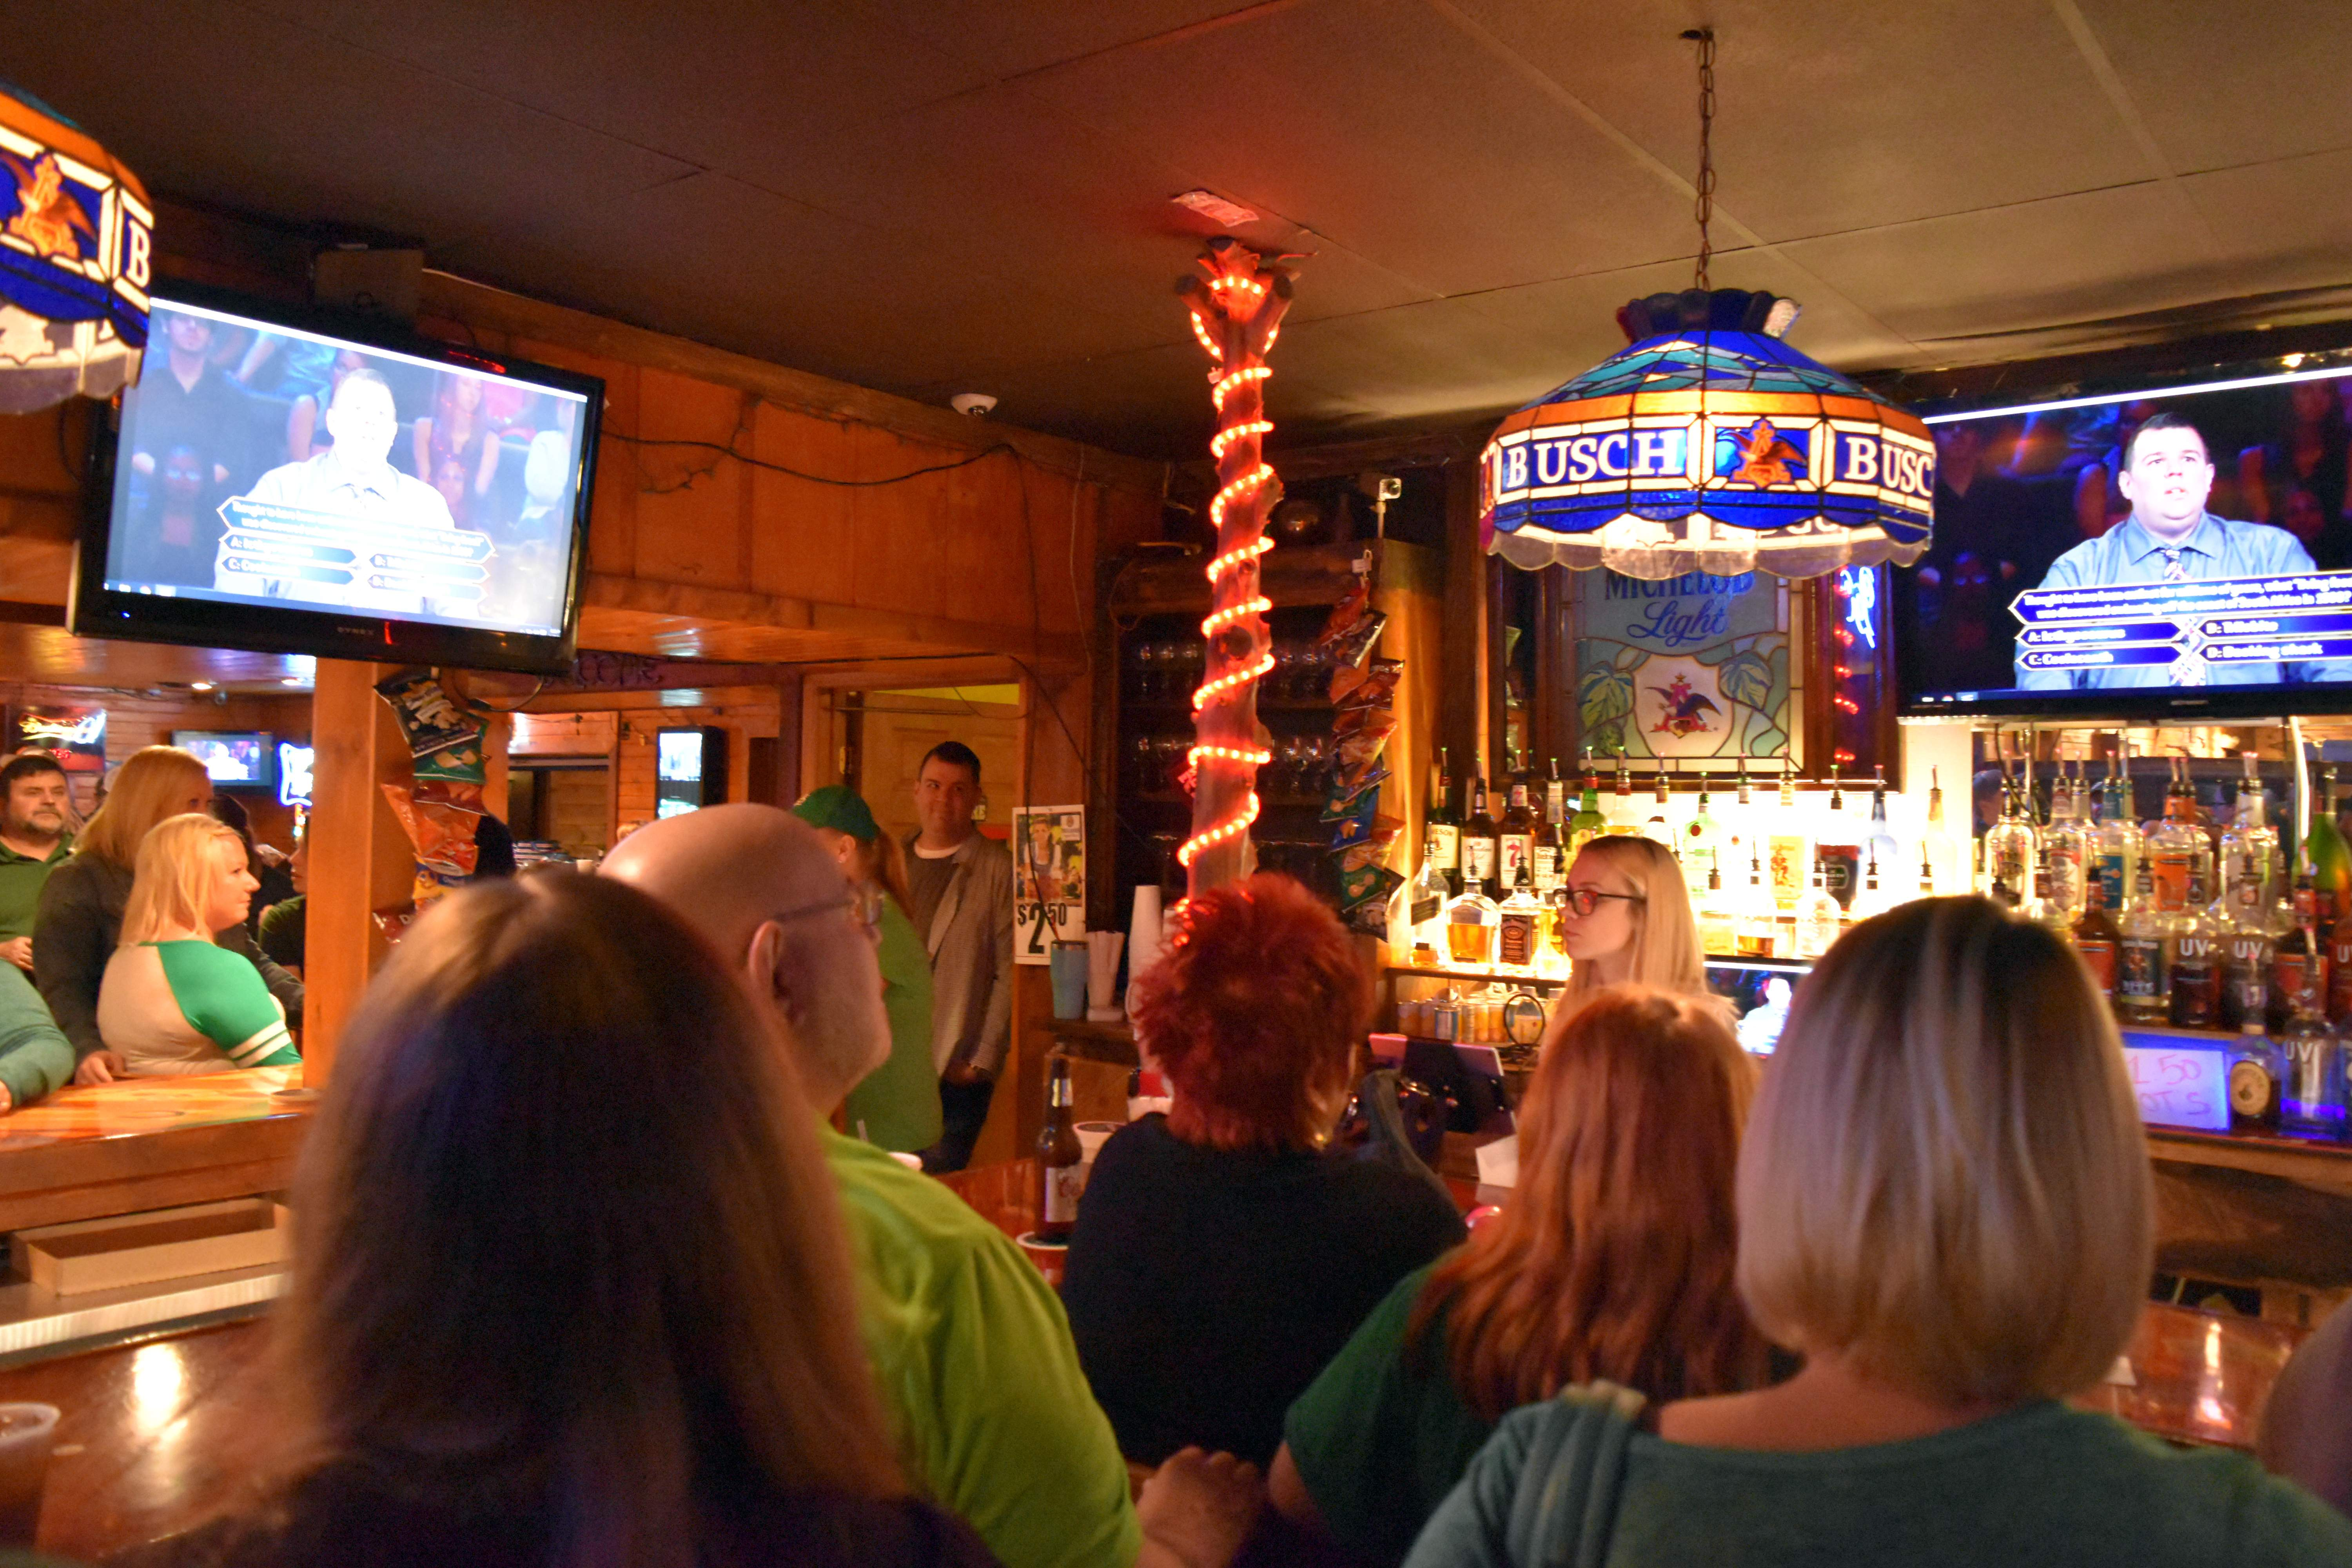 """Patrons at Pistol City Restaurant and Saloon in Coulterville watch the establishment's general manager, Kyle Hinnerichs, compete on """"Who Wants to Be a Millionaire?"""" last Friday. Pistol City hosted a viewing party for Hinnerichs' appearance, which was taped in August 2016."""